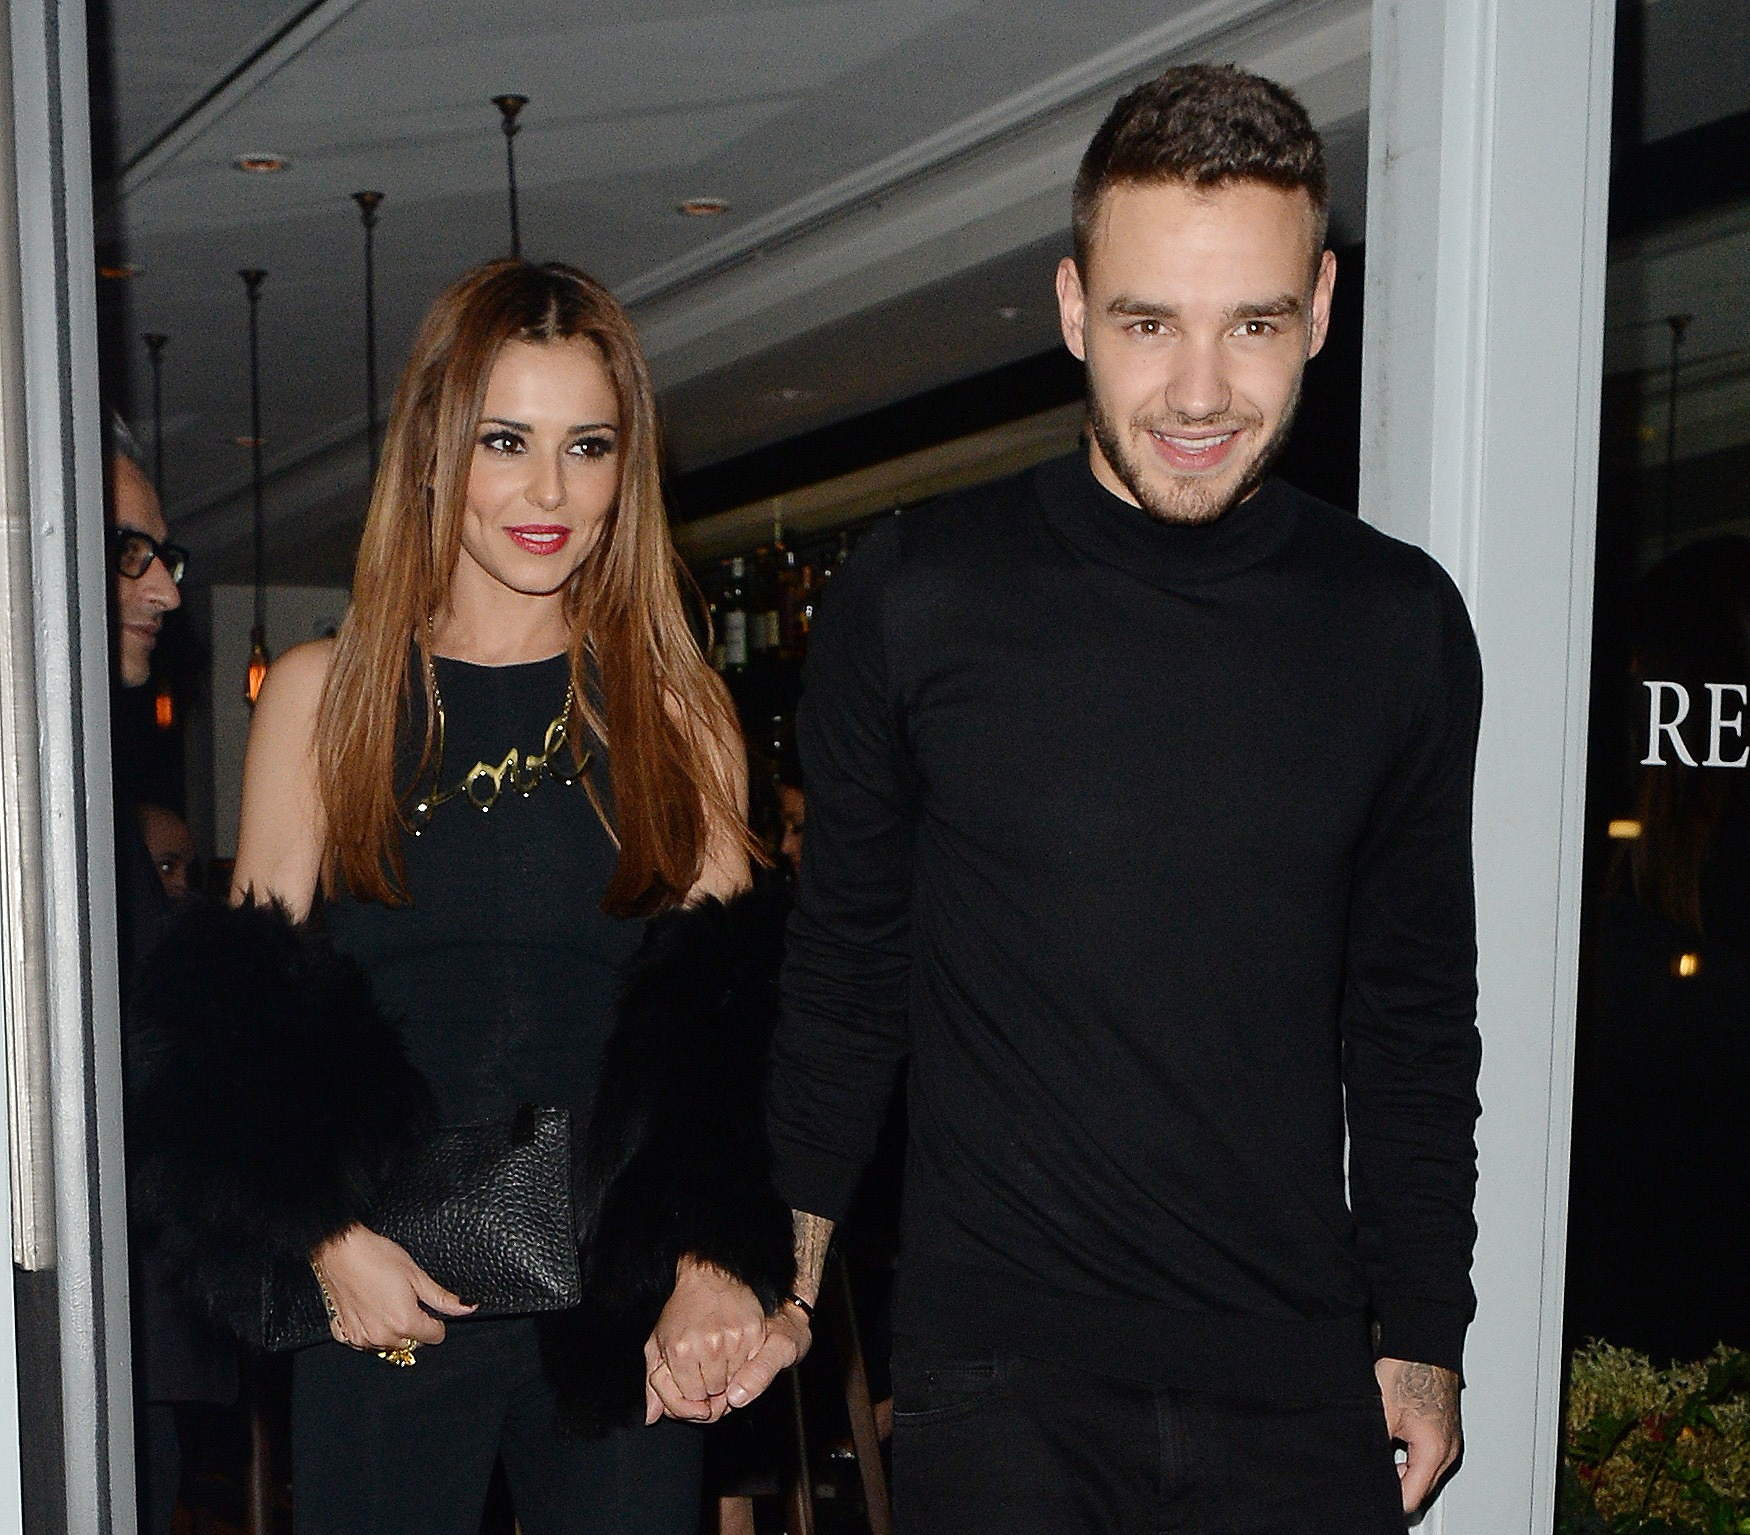 Are Liam Payne And Cheryl Tweedy On The Verge Of A Break-Up?